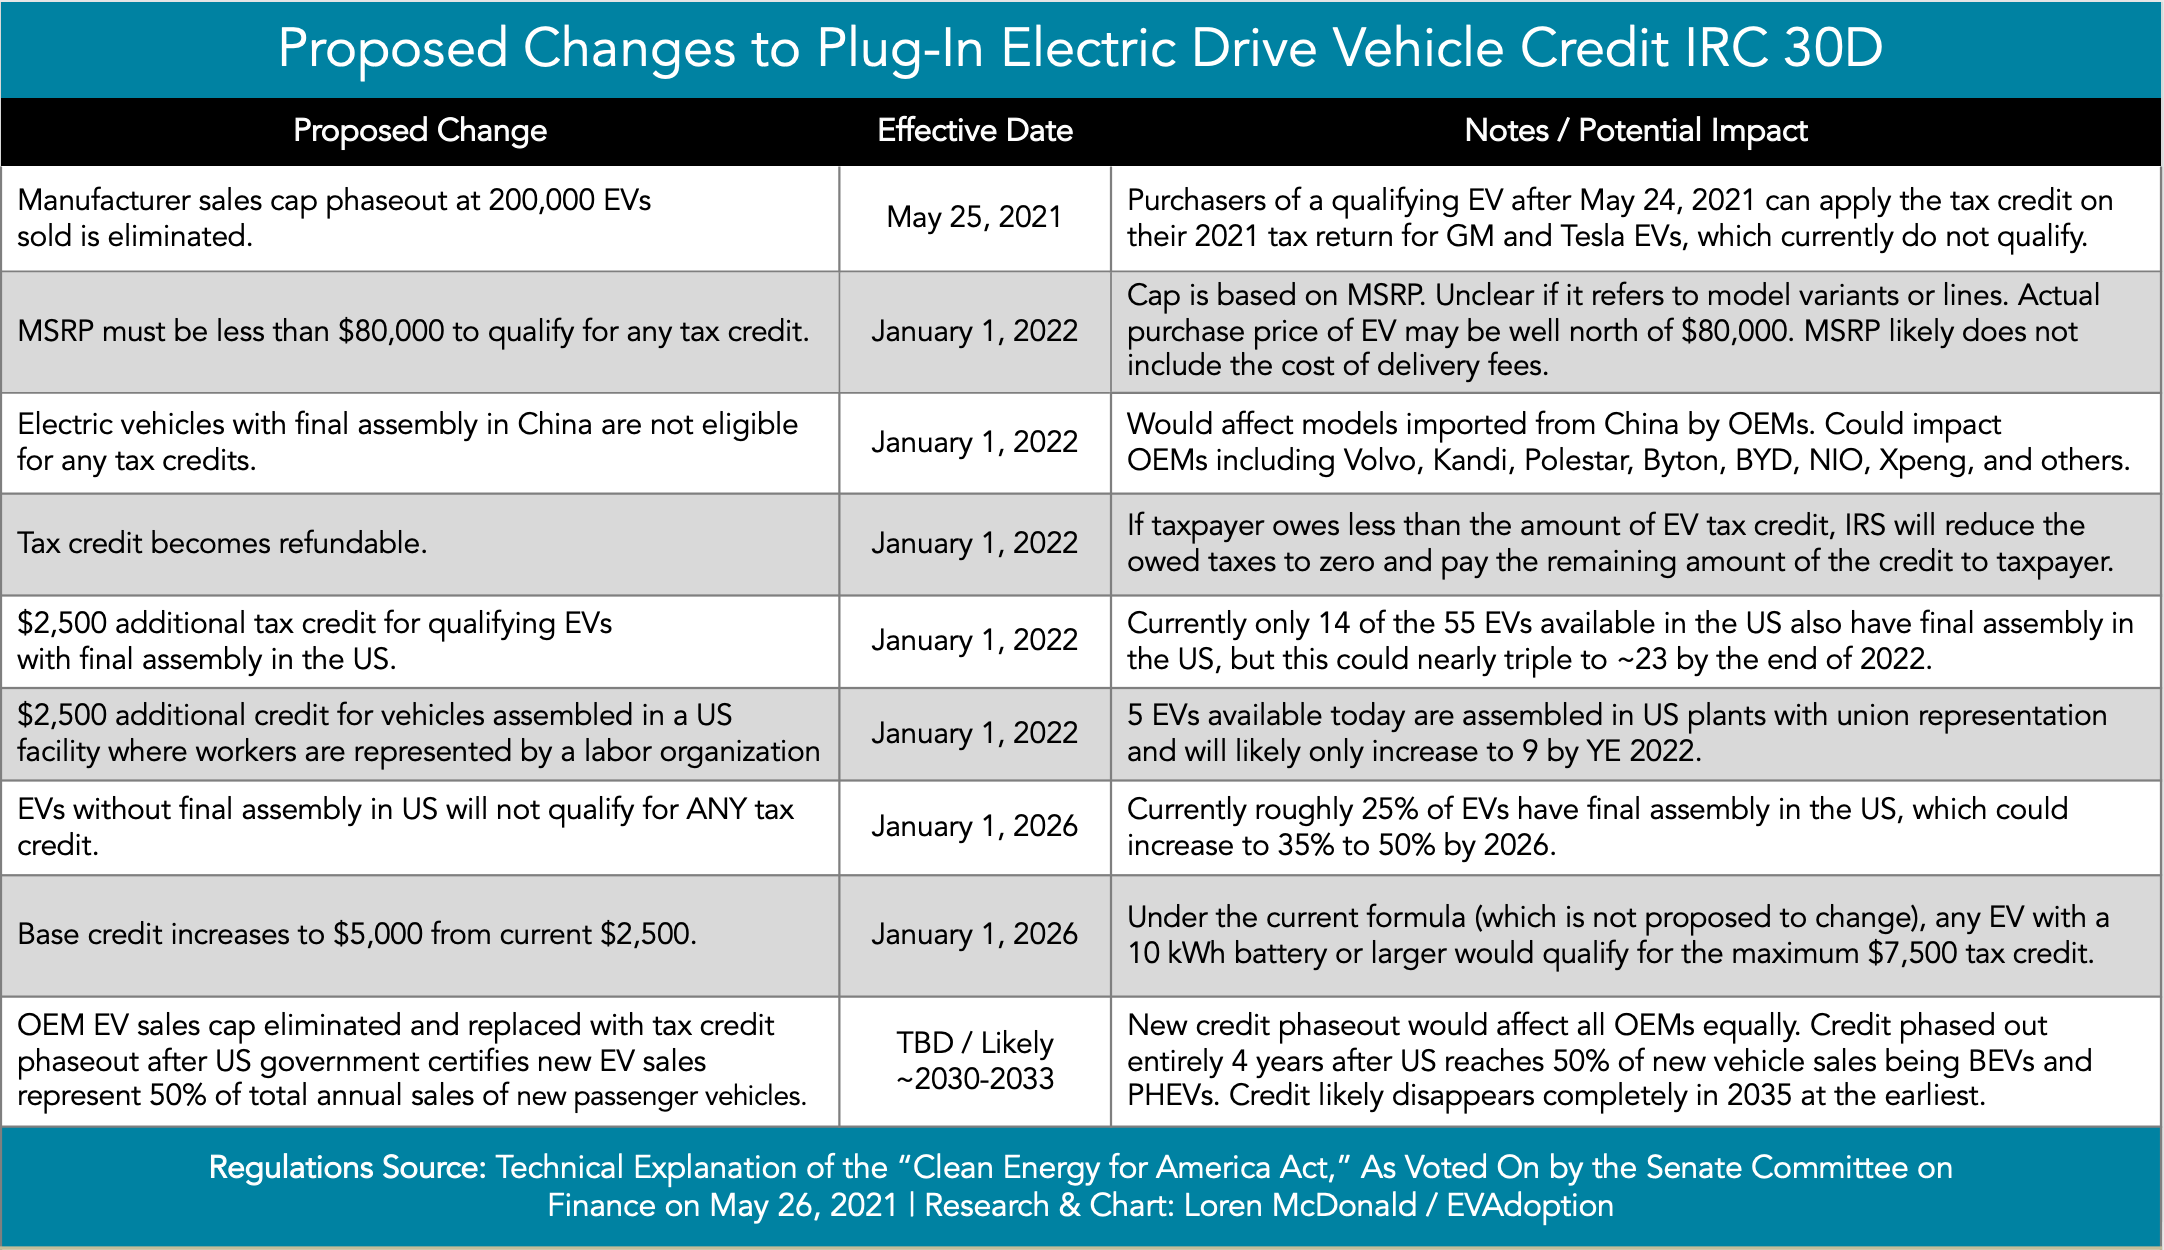 Proposed Changes to IRC 30D Federal EV Tax Credit summary table